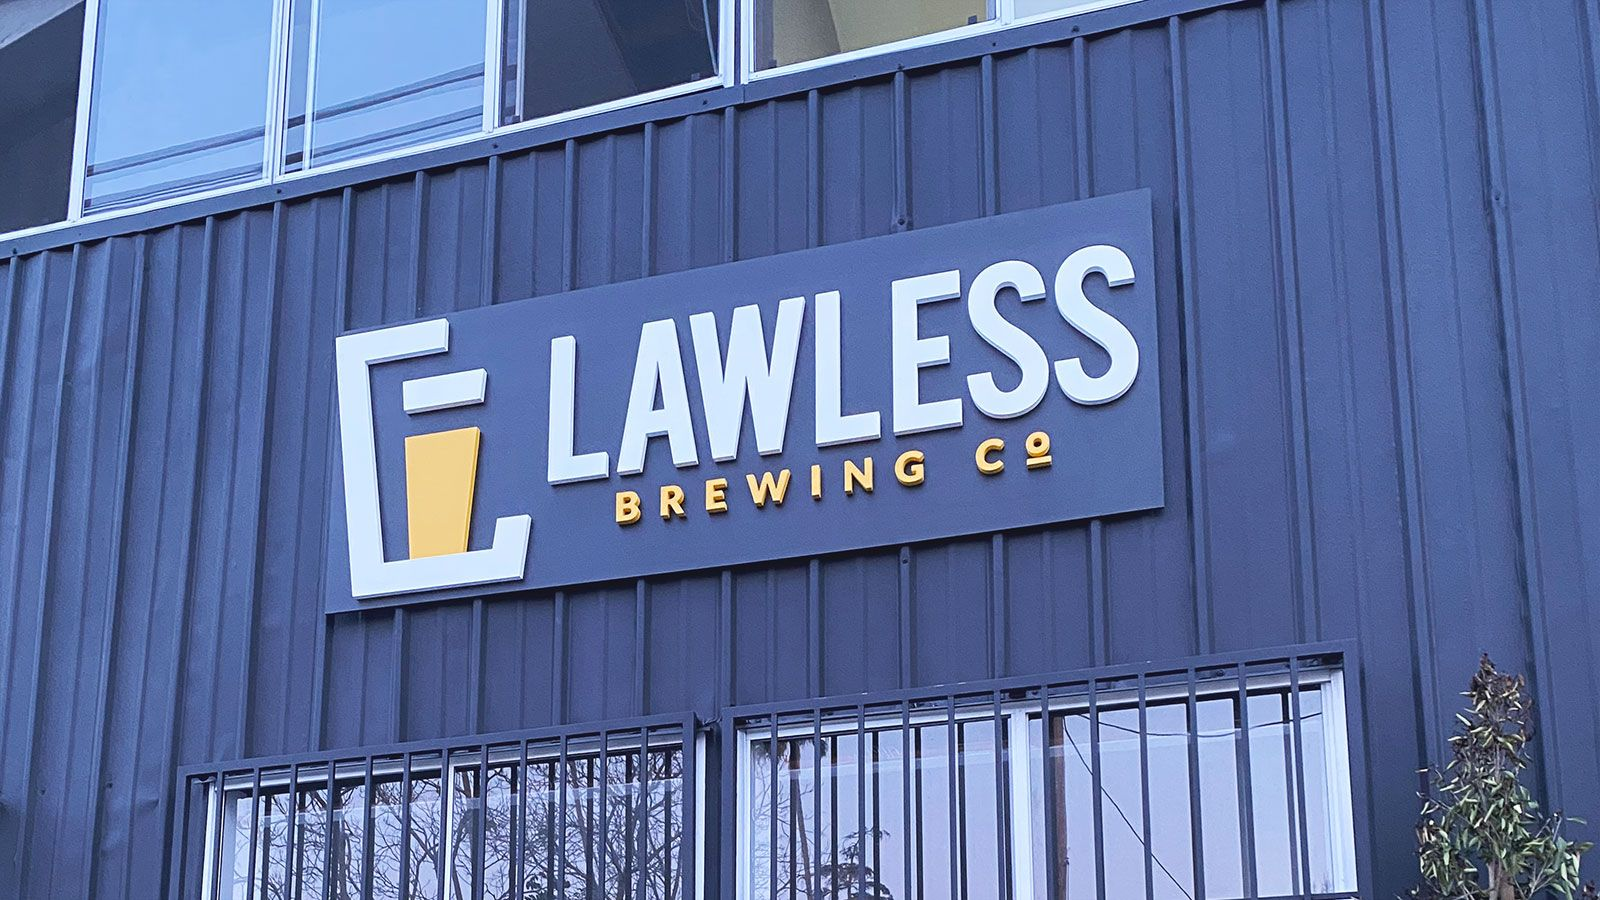 Lawless brewing 3D sign